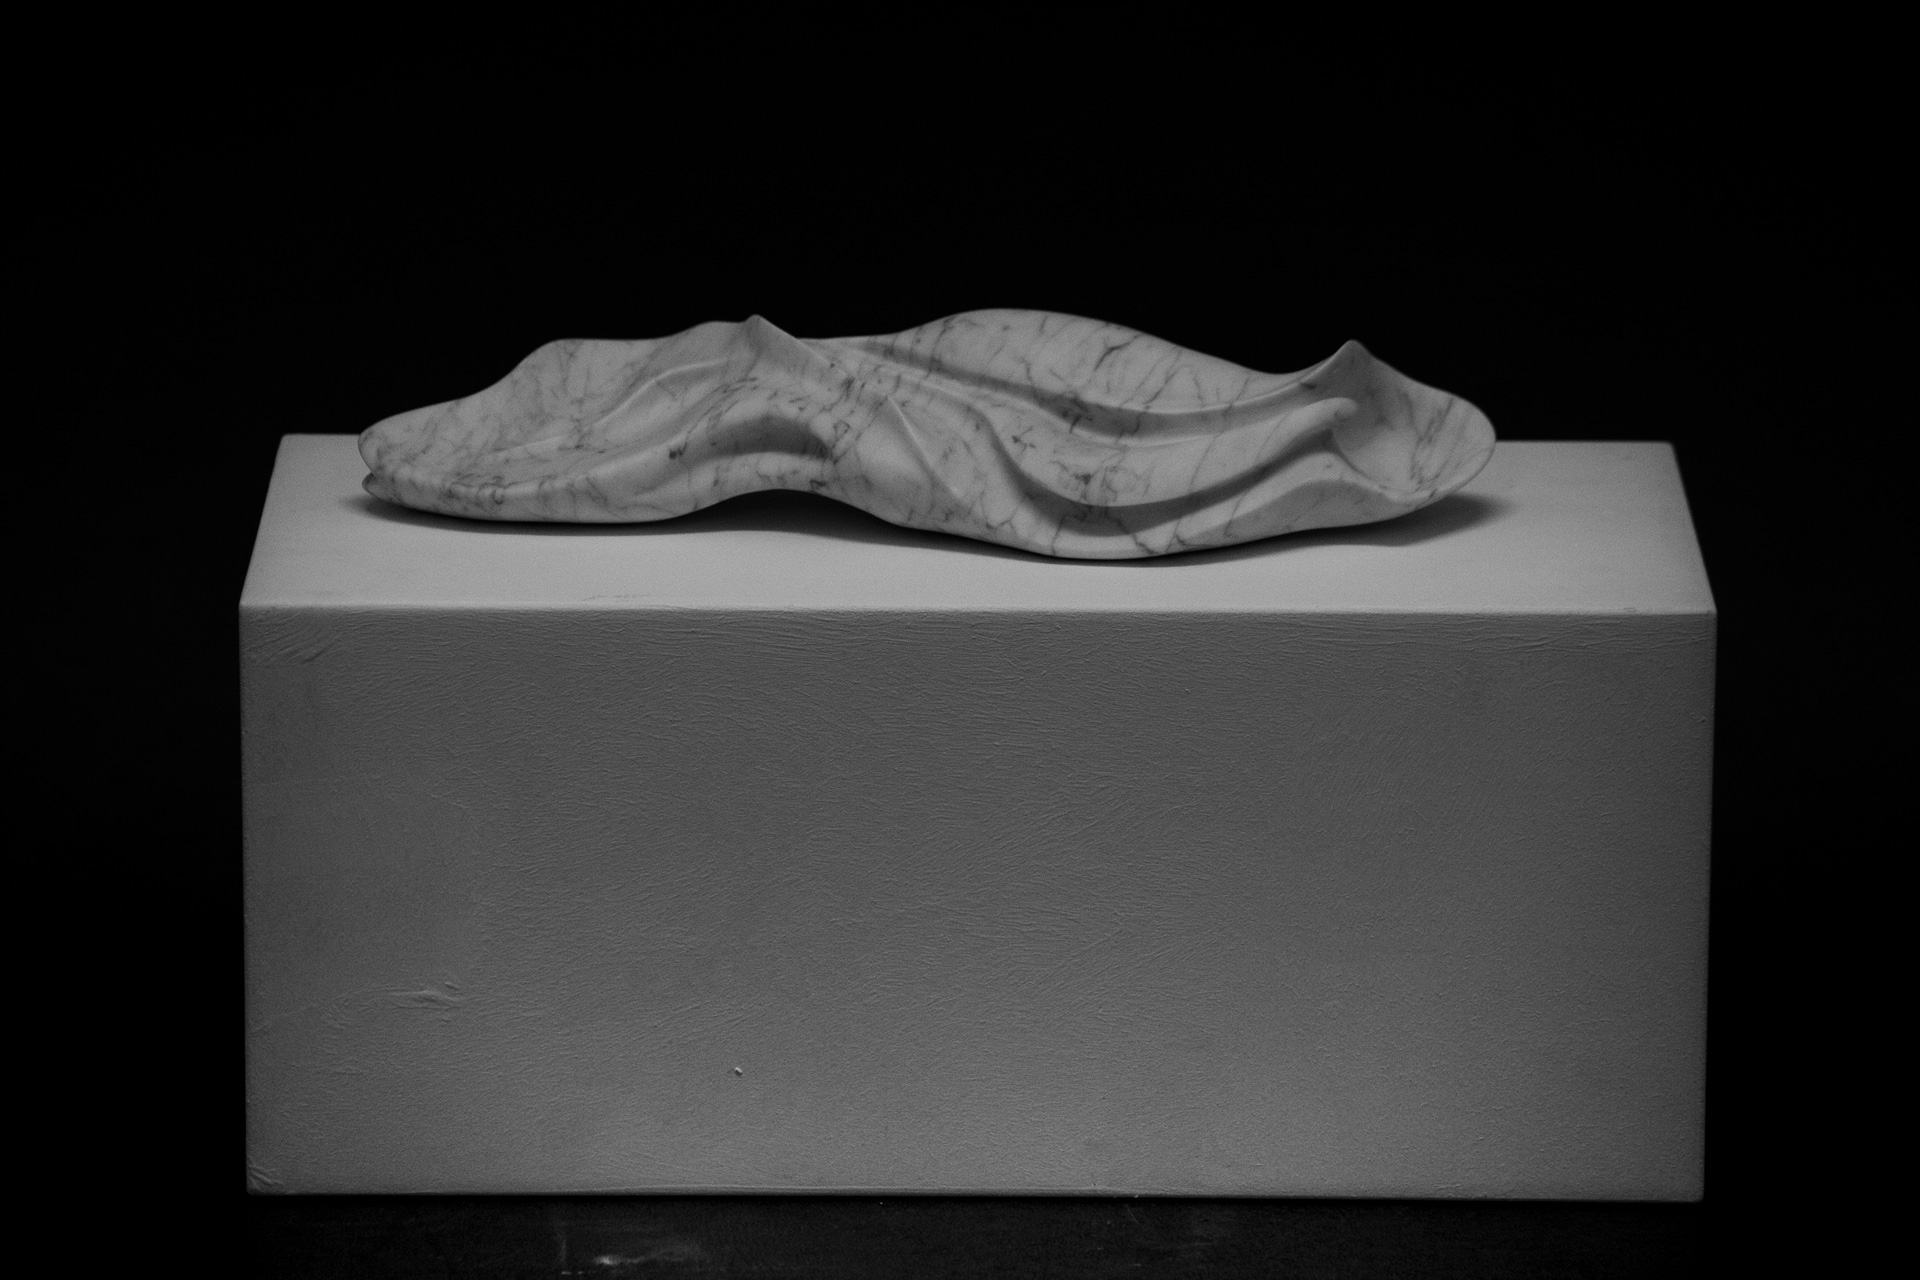 Marble sculpture of Hanna Gigling 21